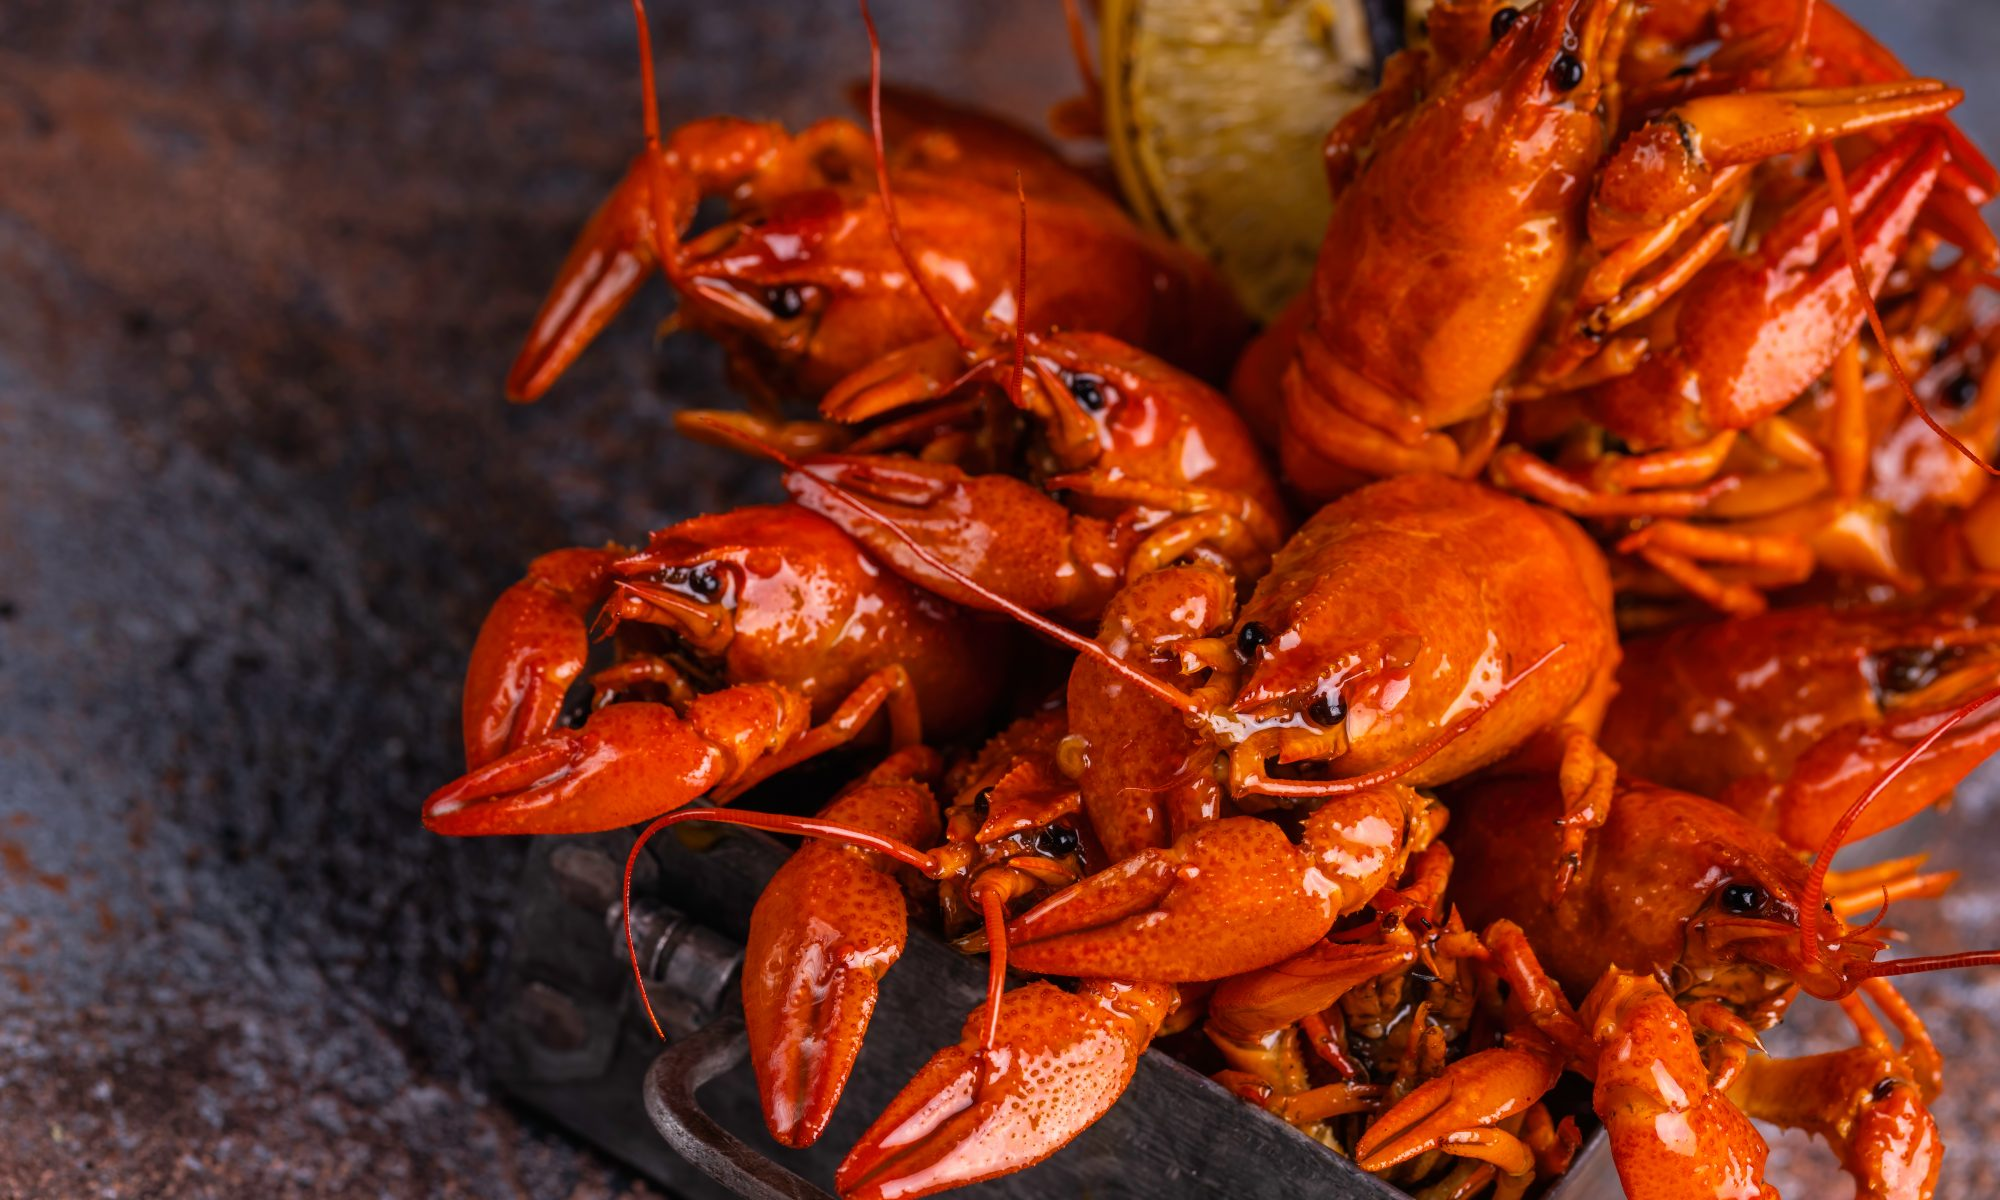 Angry Crab Shack teaches you how to eat their crawfish meal